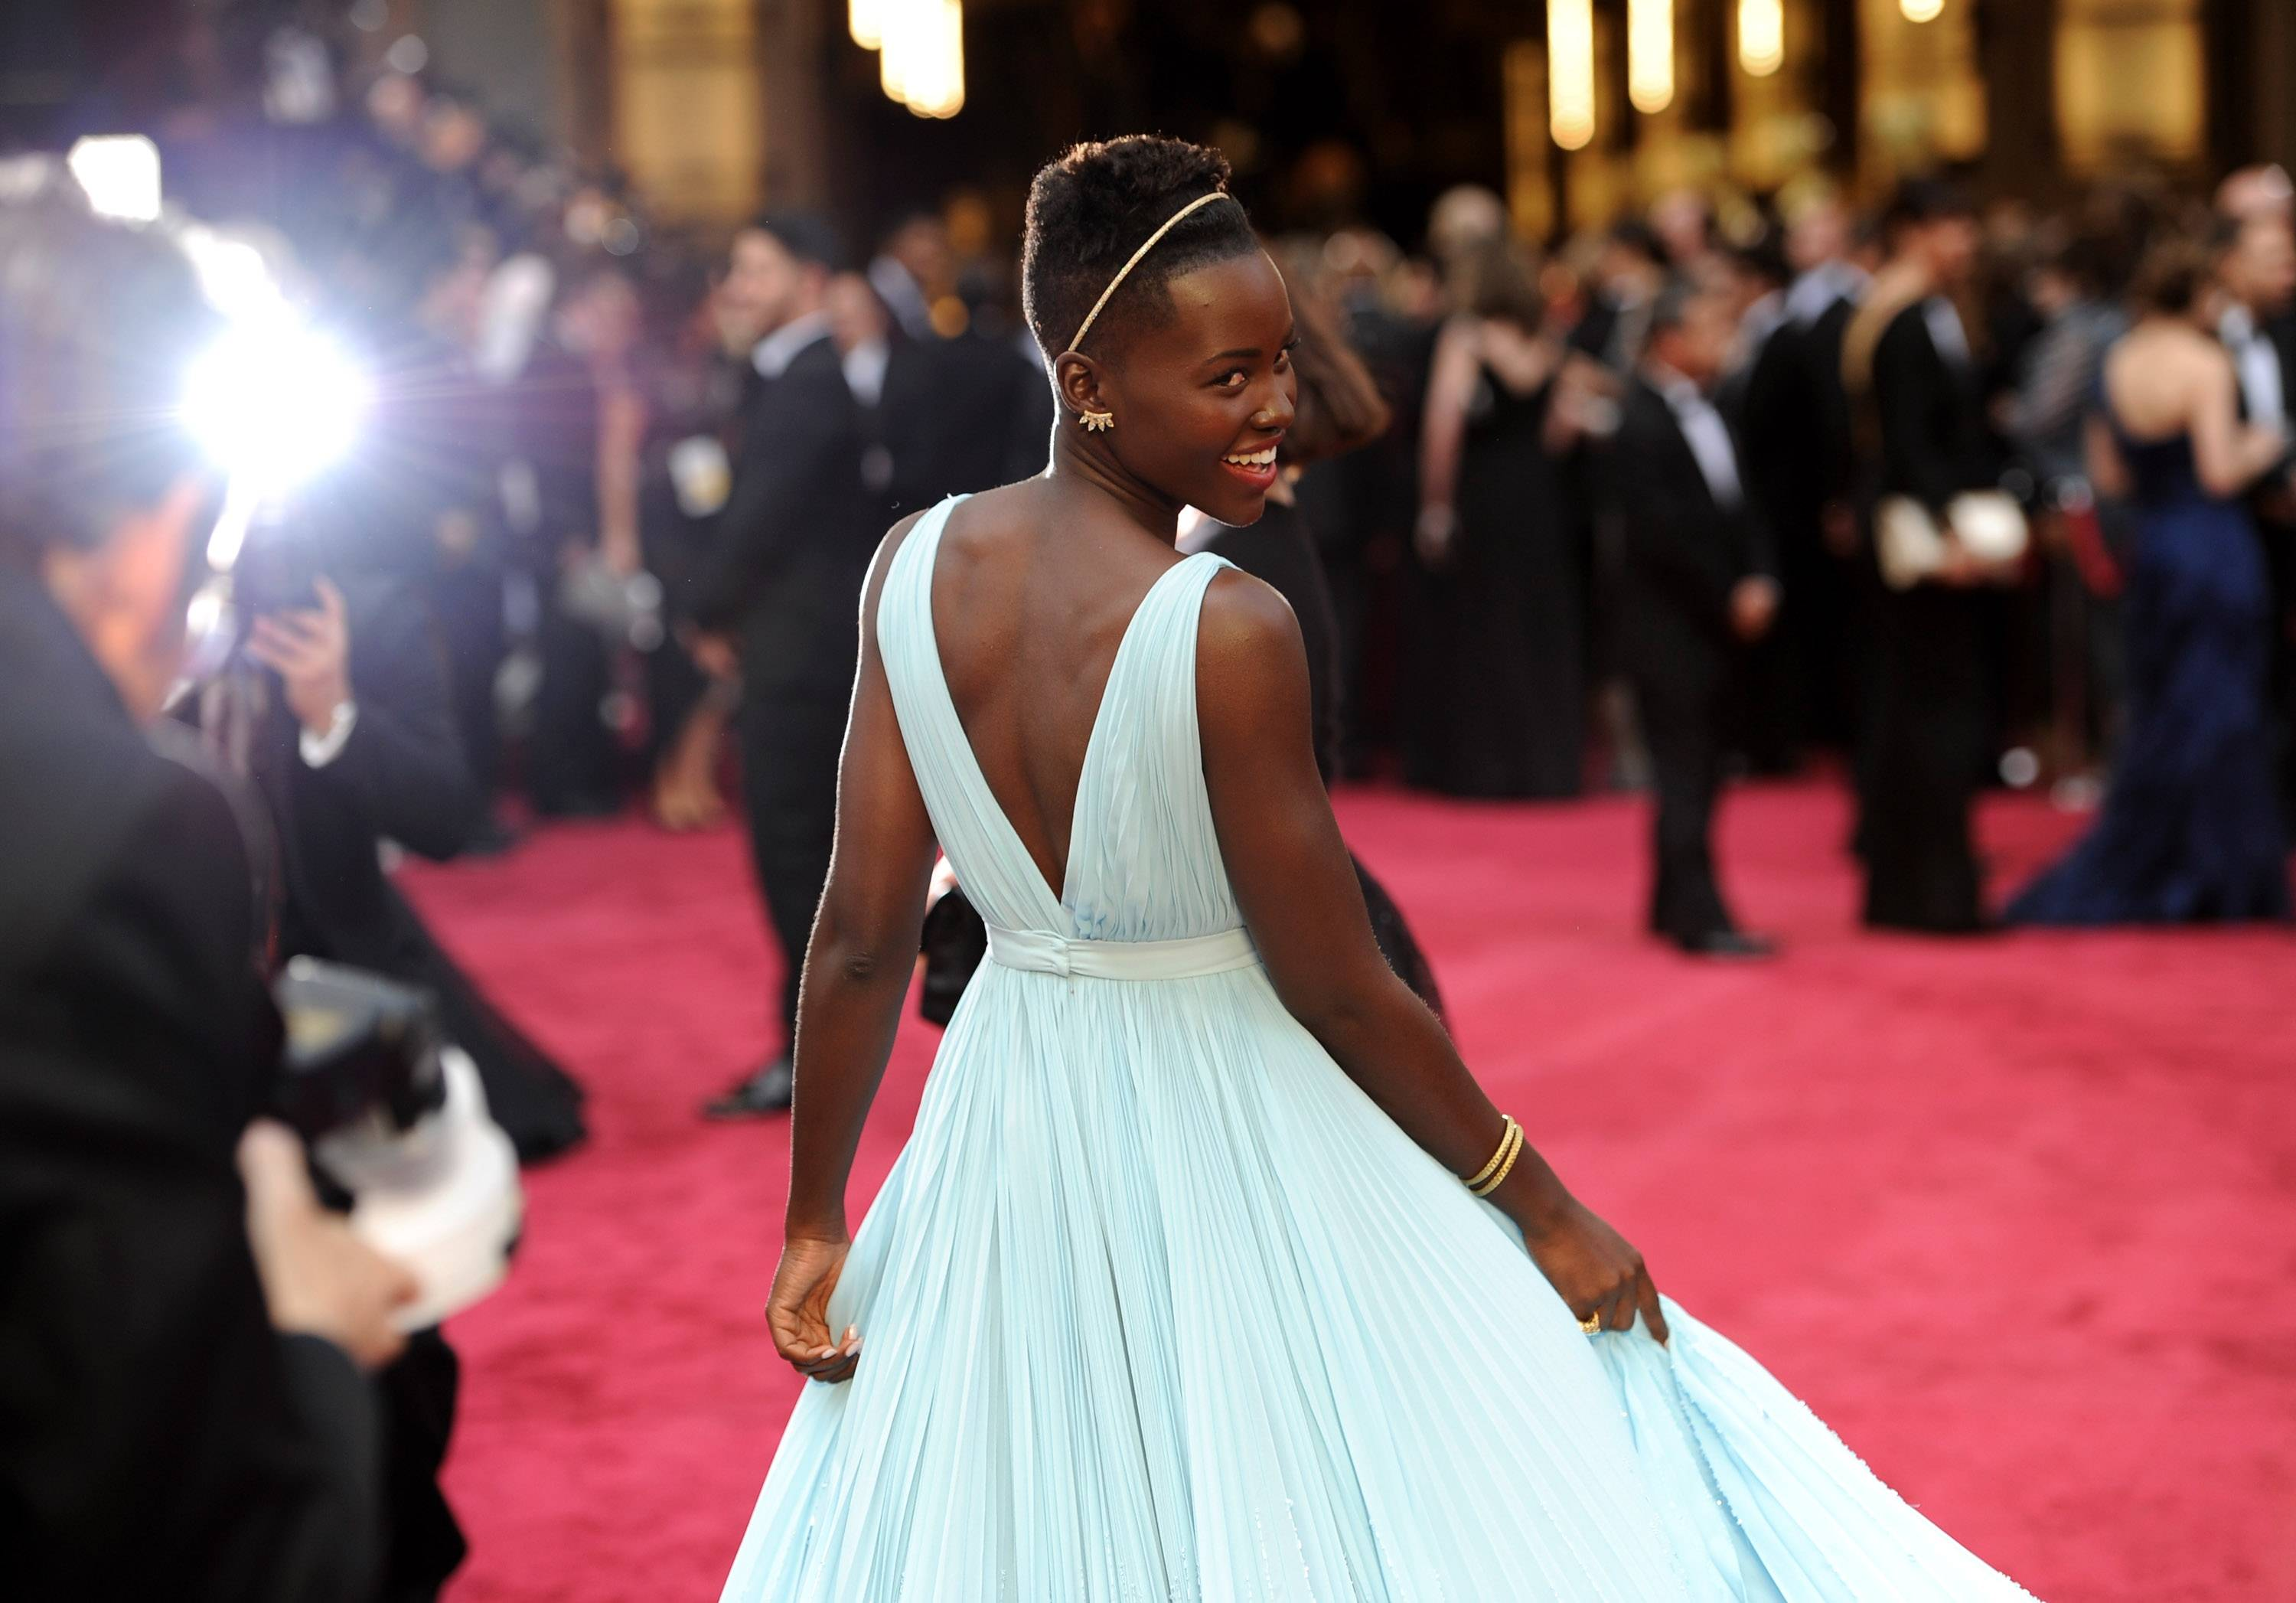 Oscar nominee Lupita Nyong'o looks every bit the Hollywood star as she makes her way down the red carpet.